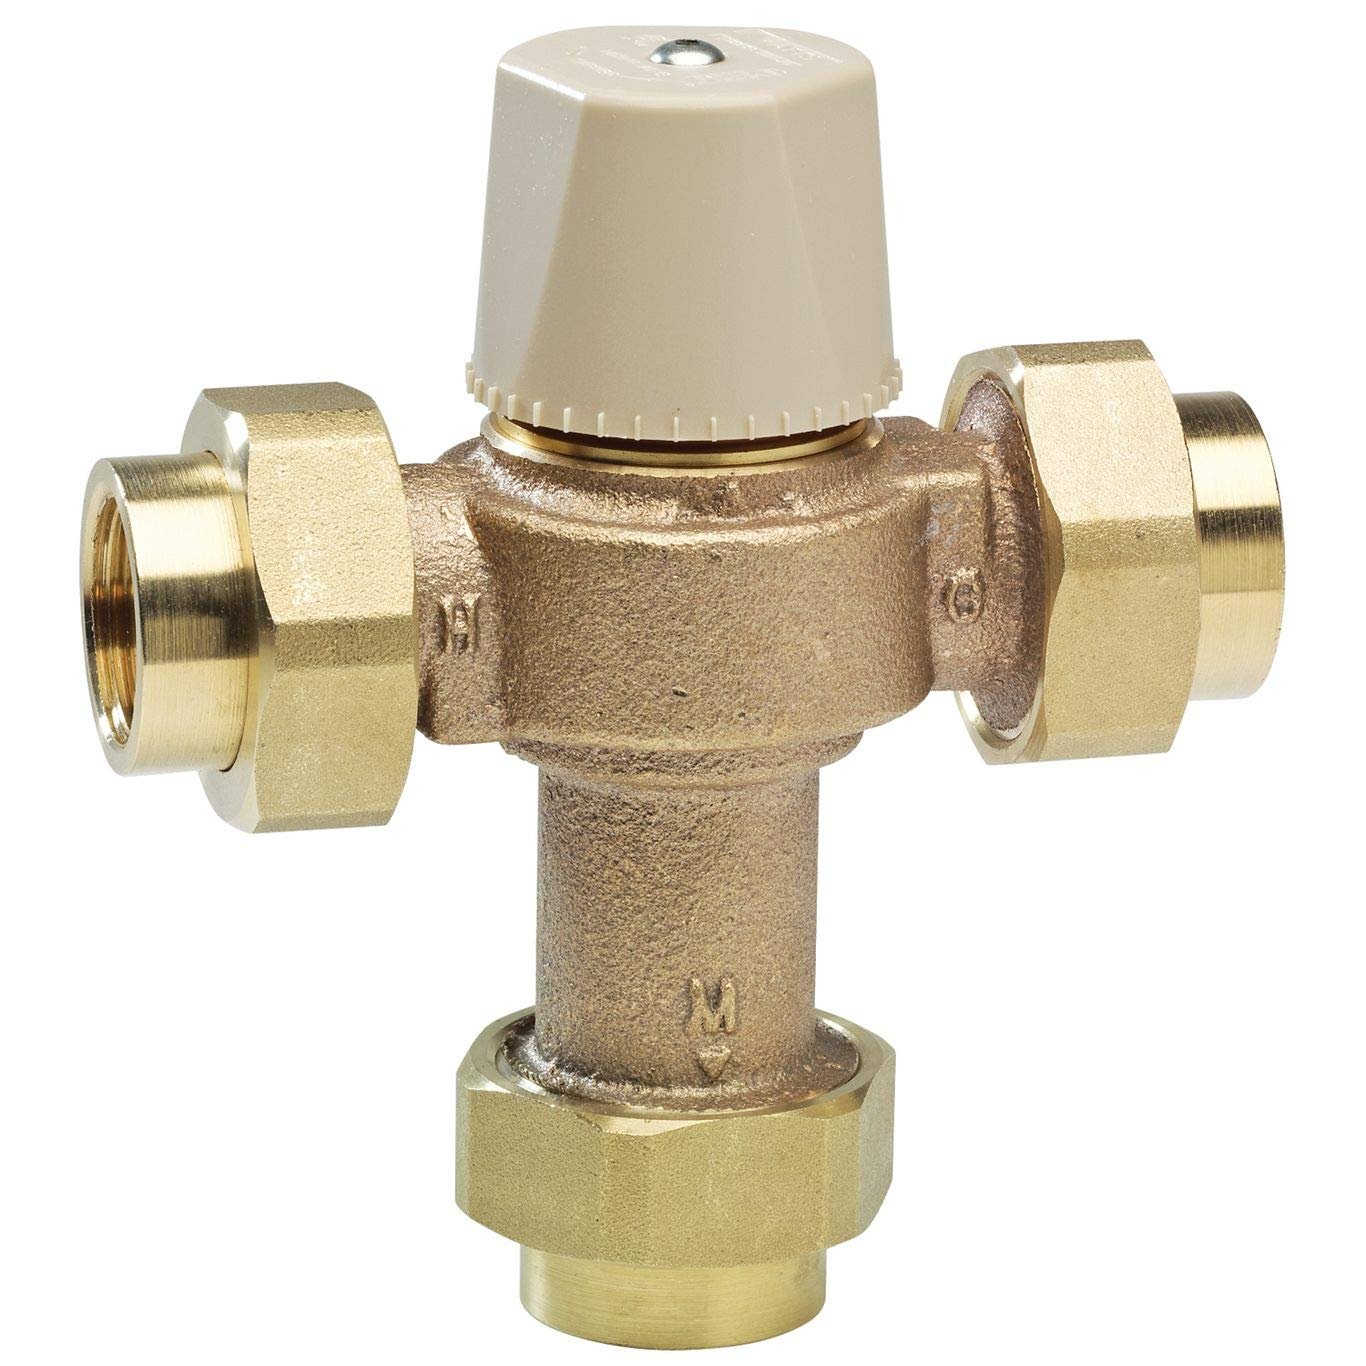 .5 to 12 GPM Watts LF-MMV-M1-UT 1 Thermostatic Mixing Valve with FPT Union Connections 80 Degree to 120 Degree Adjustable